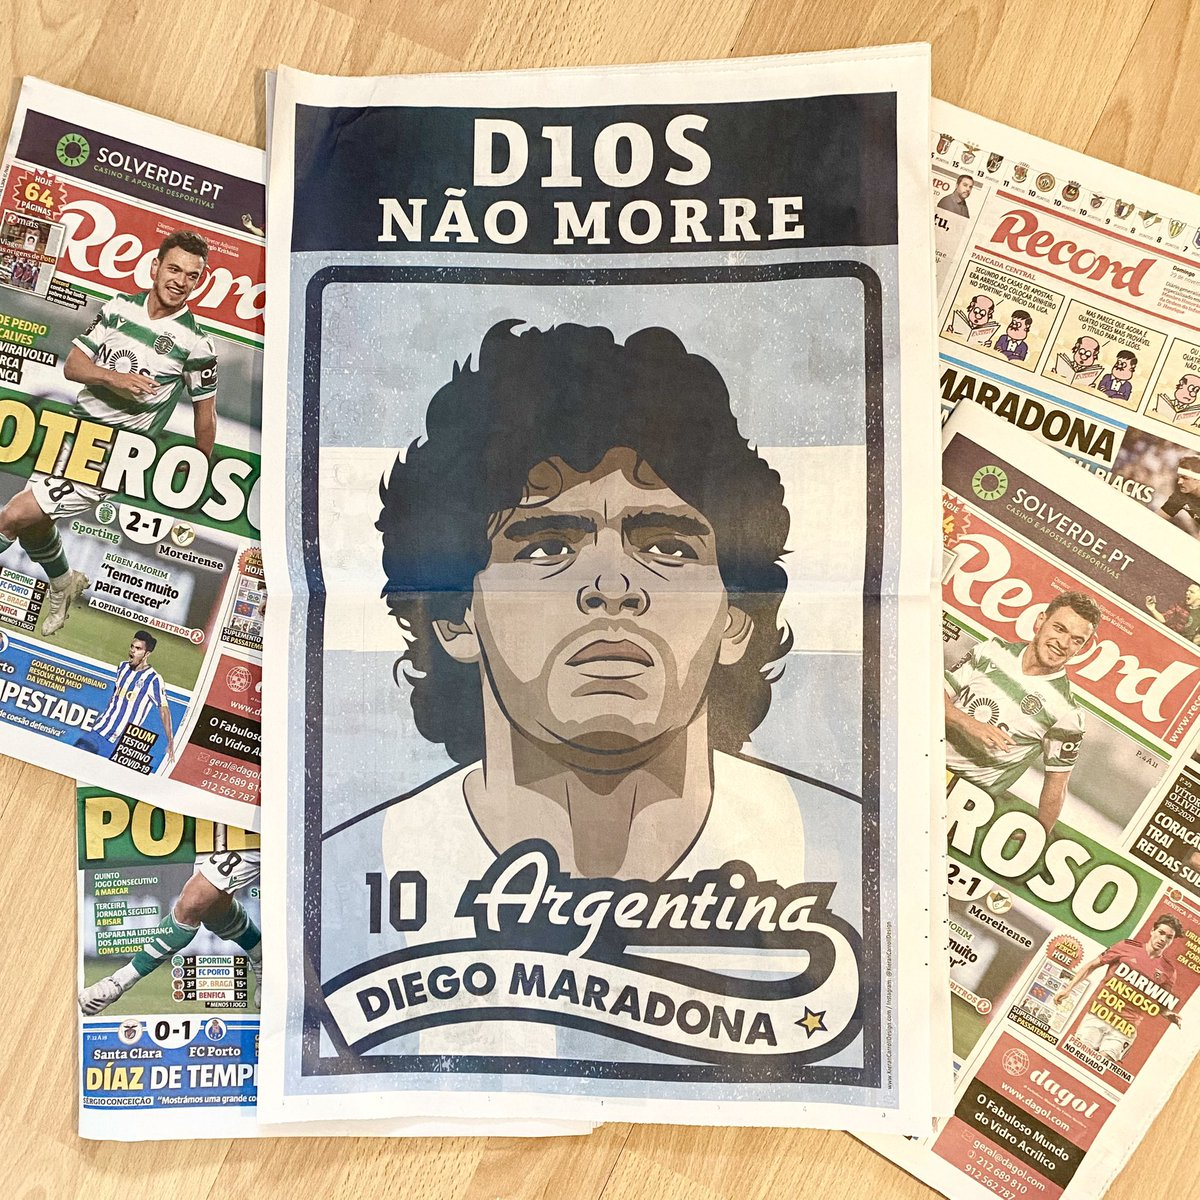 'D10S Não Morre' - God Doesn't Die 👑   Got my copies of @Record_Portugal 🗞 where my illustration was used as a double page spread covering Maradona's death back in November.   #ElDiego #DiegoMaradona #Maradona 🇦🇷 ⚽️